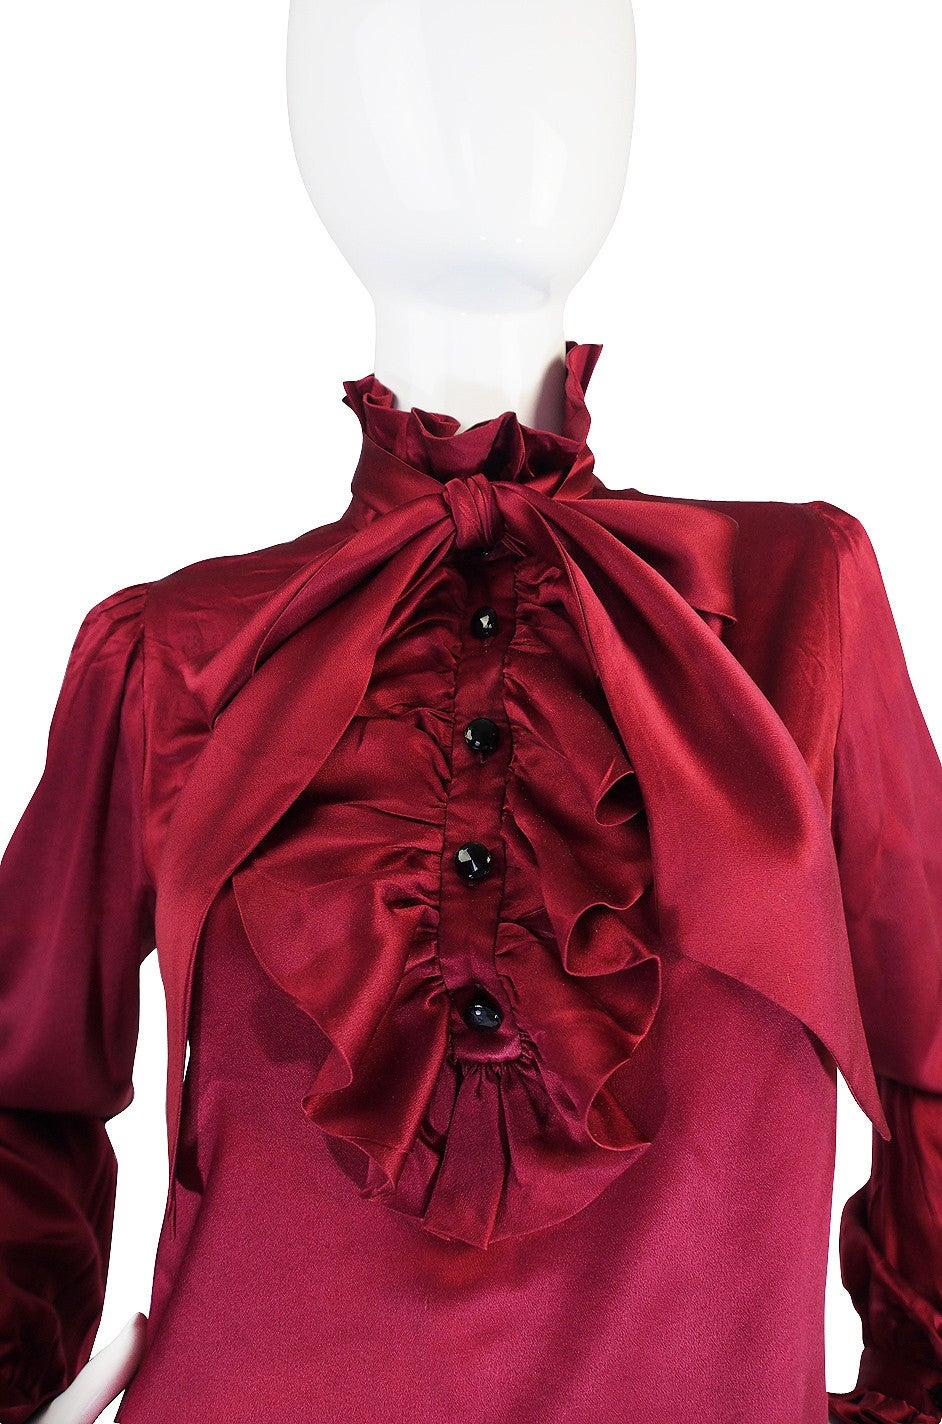 1979 Haute Couture Silk Yves Saint Laurent Top In Good Condition For Sale In Toronto, CA